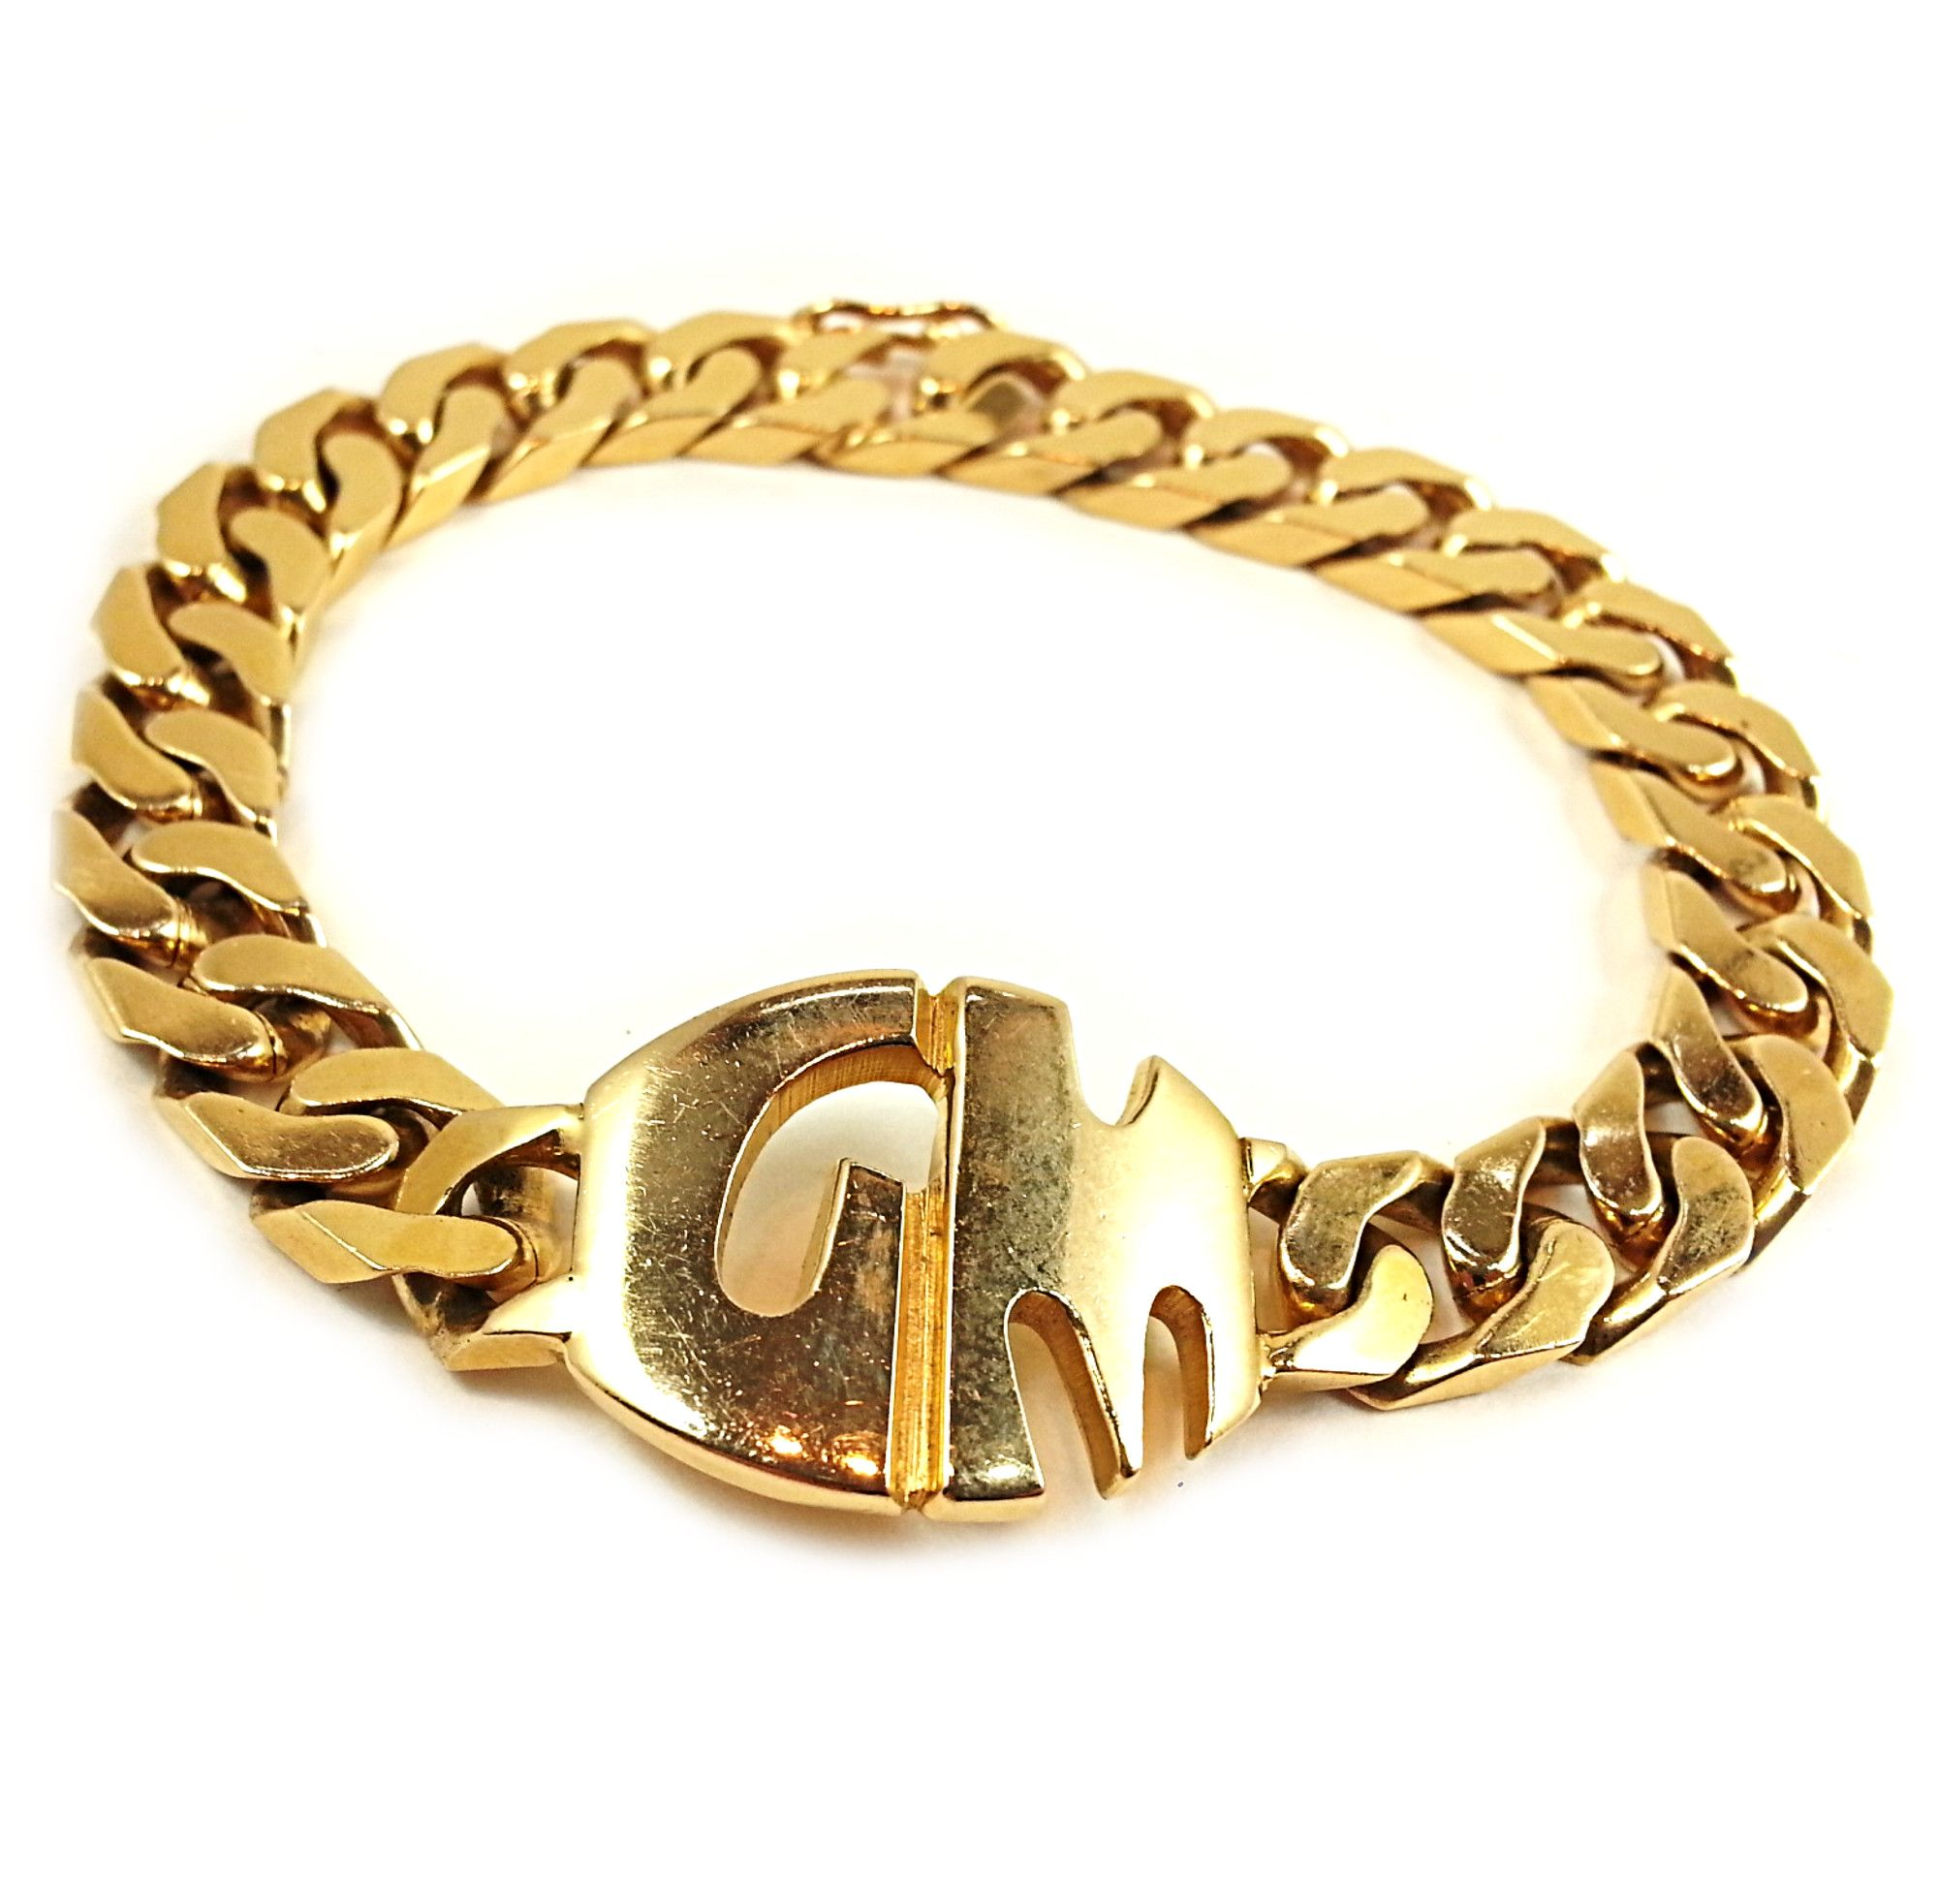 inch bracelet bangles style bangle gold solid shop ladies yellow sku